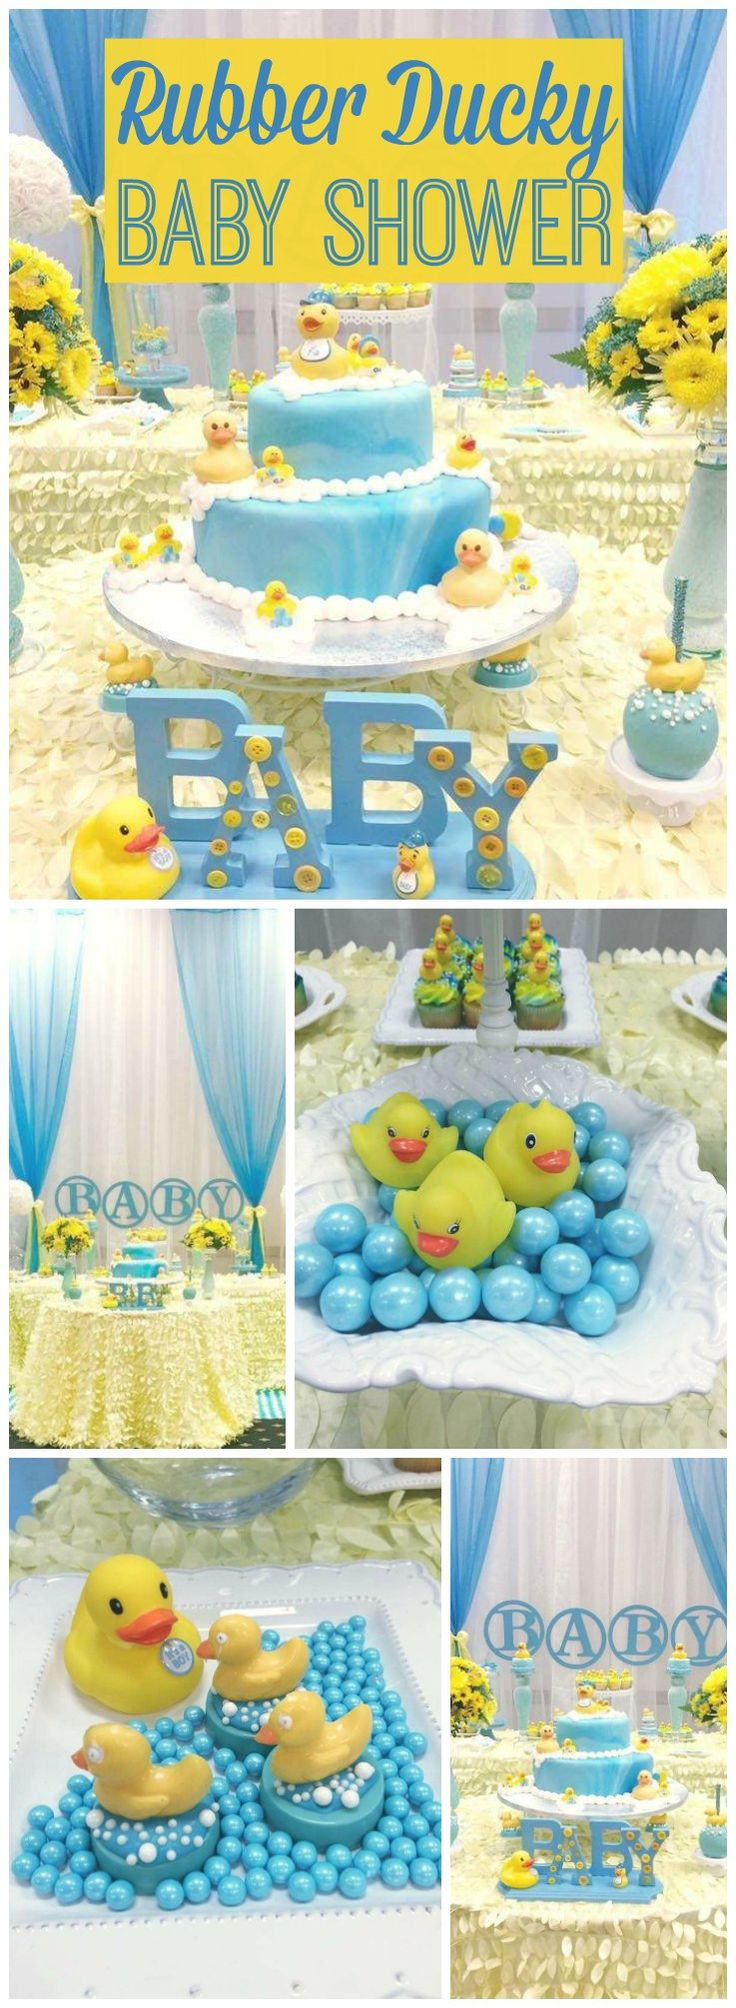 25 best ideas about baby shower themes on pinterest for Baby shower foam decoration